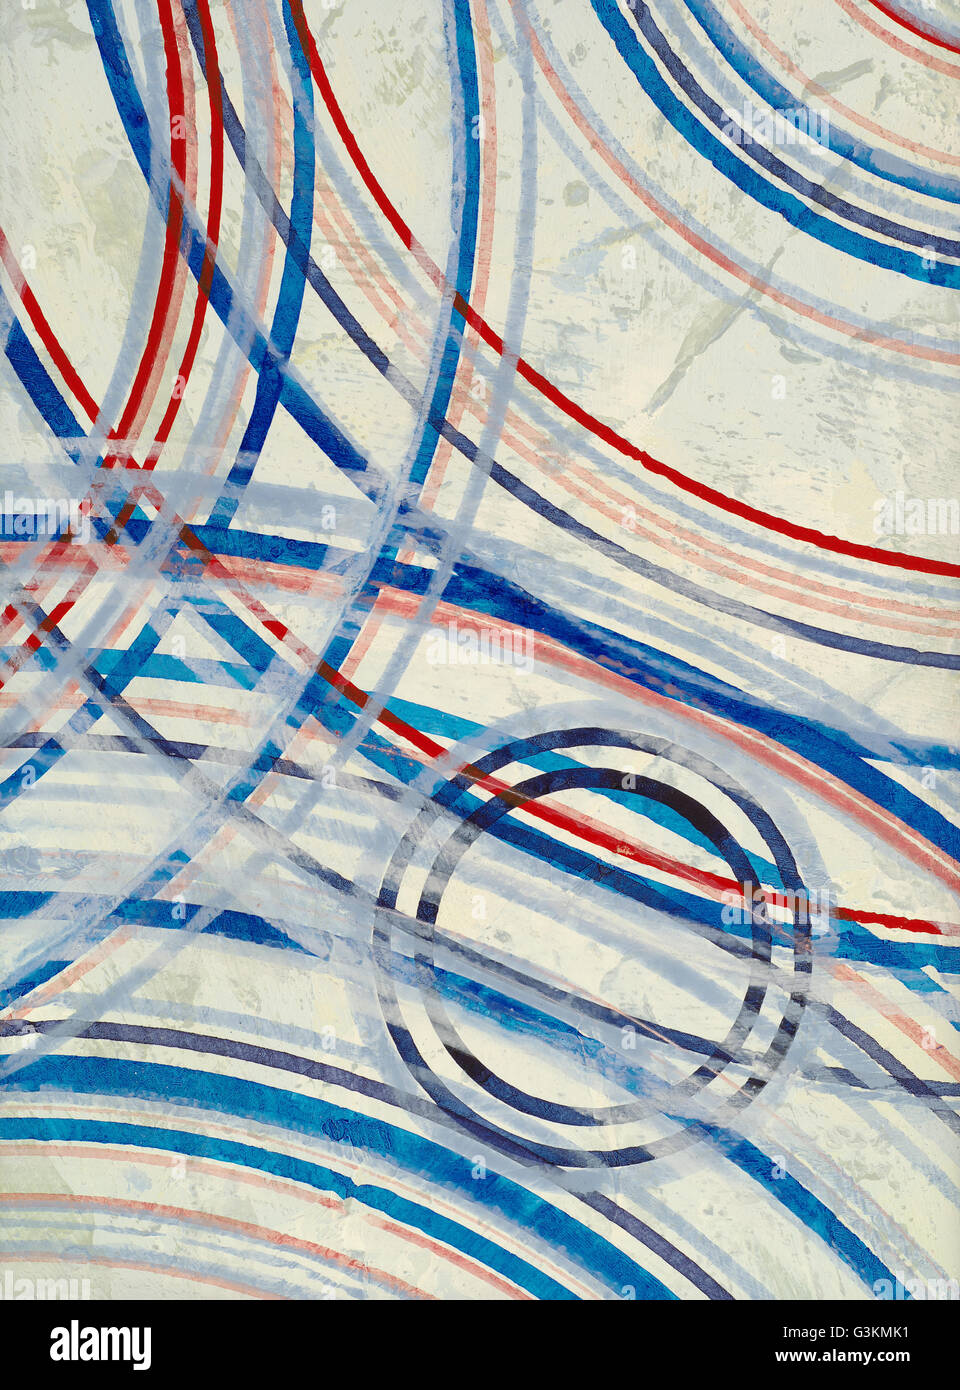 An Abstract Painting; Concentric Rings - Stock Image